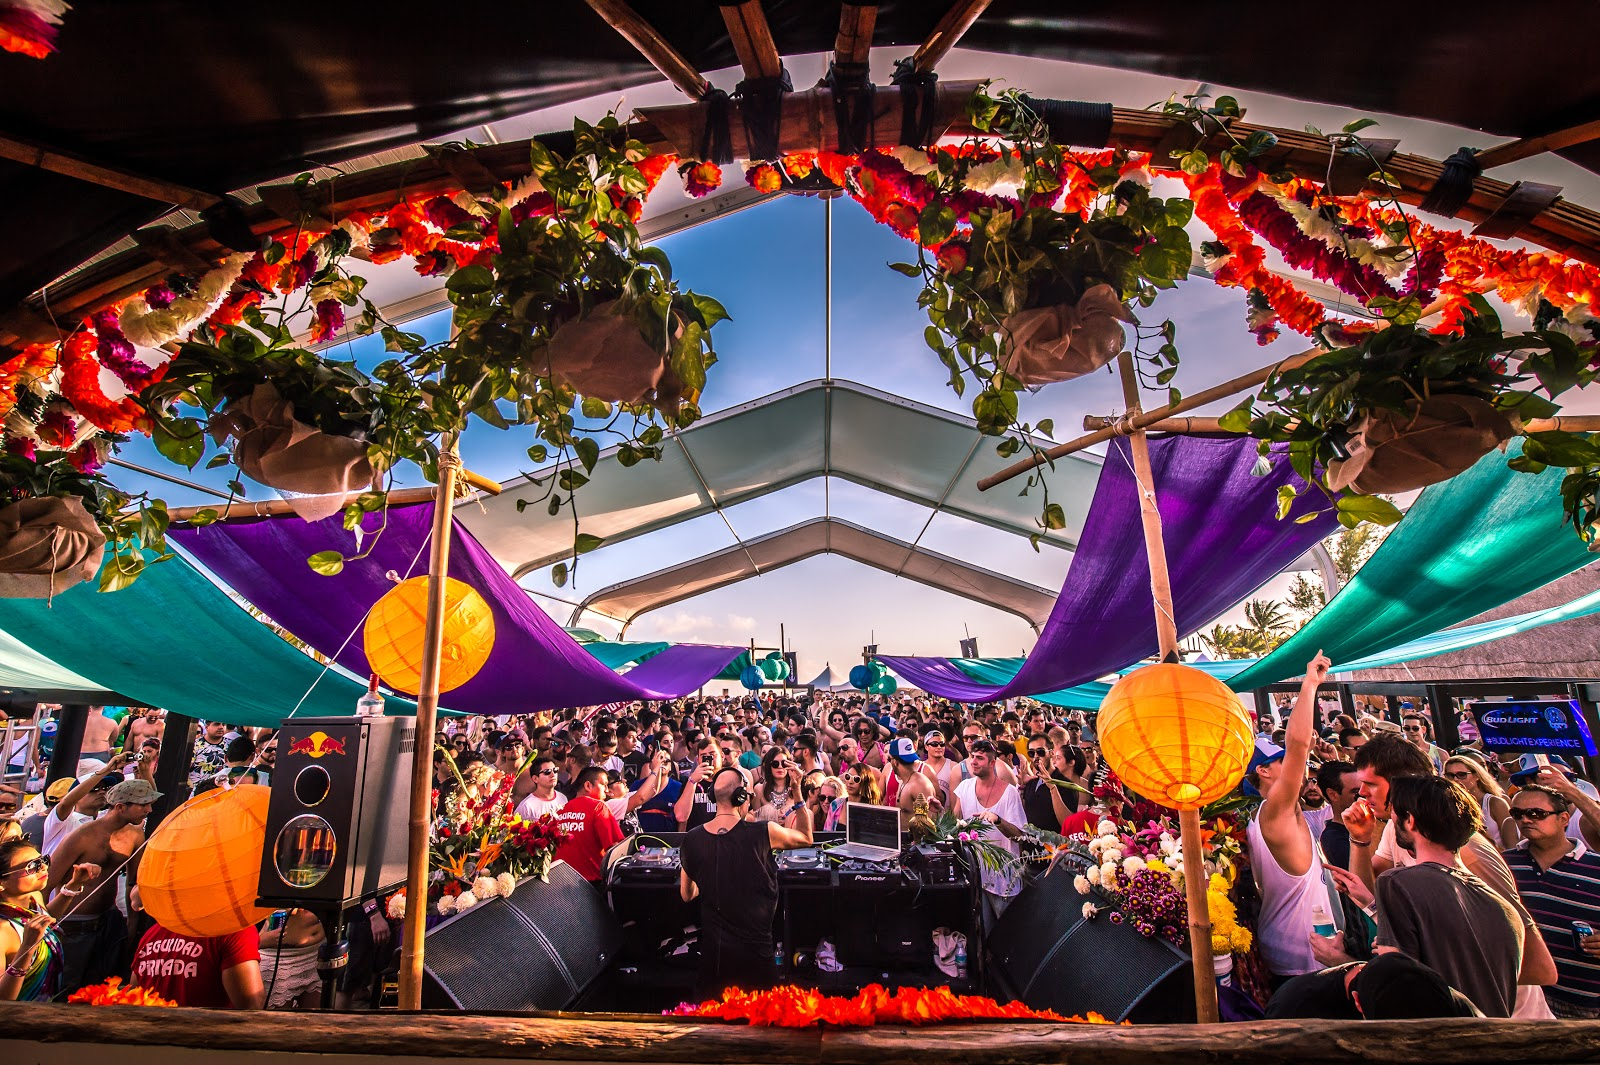 BPM Festival Announces New Destination and Dates for January 2020